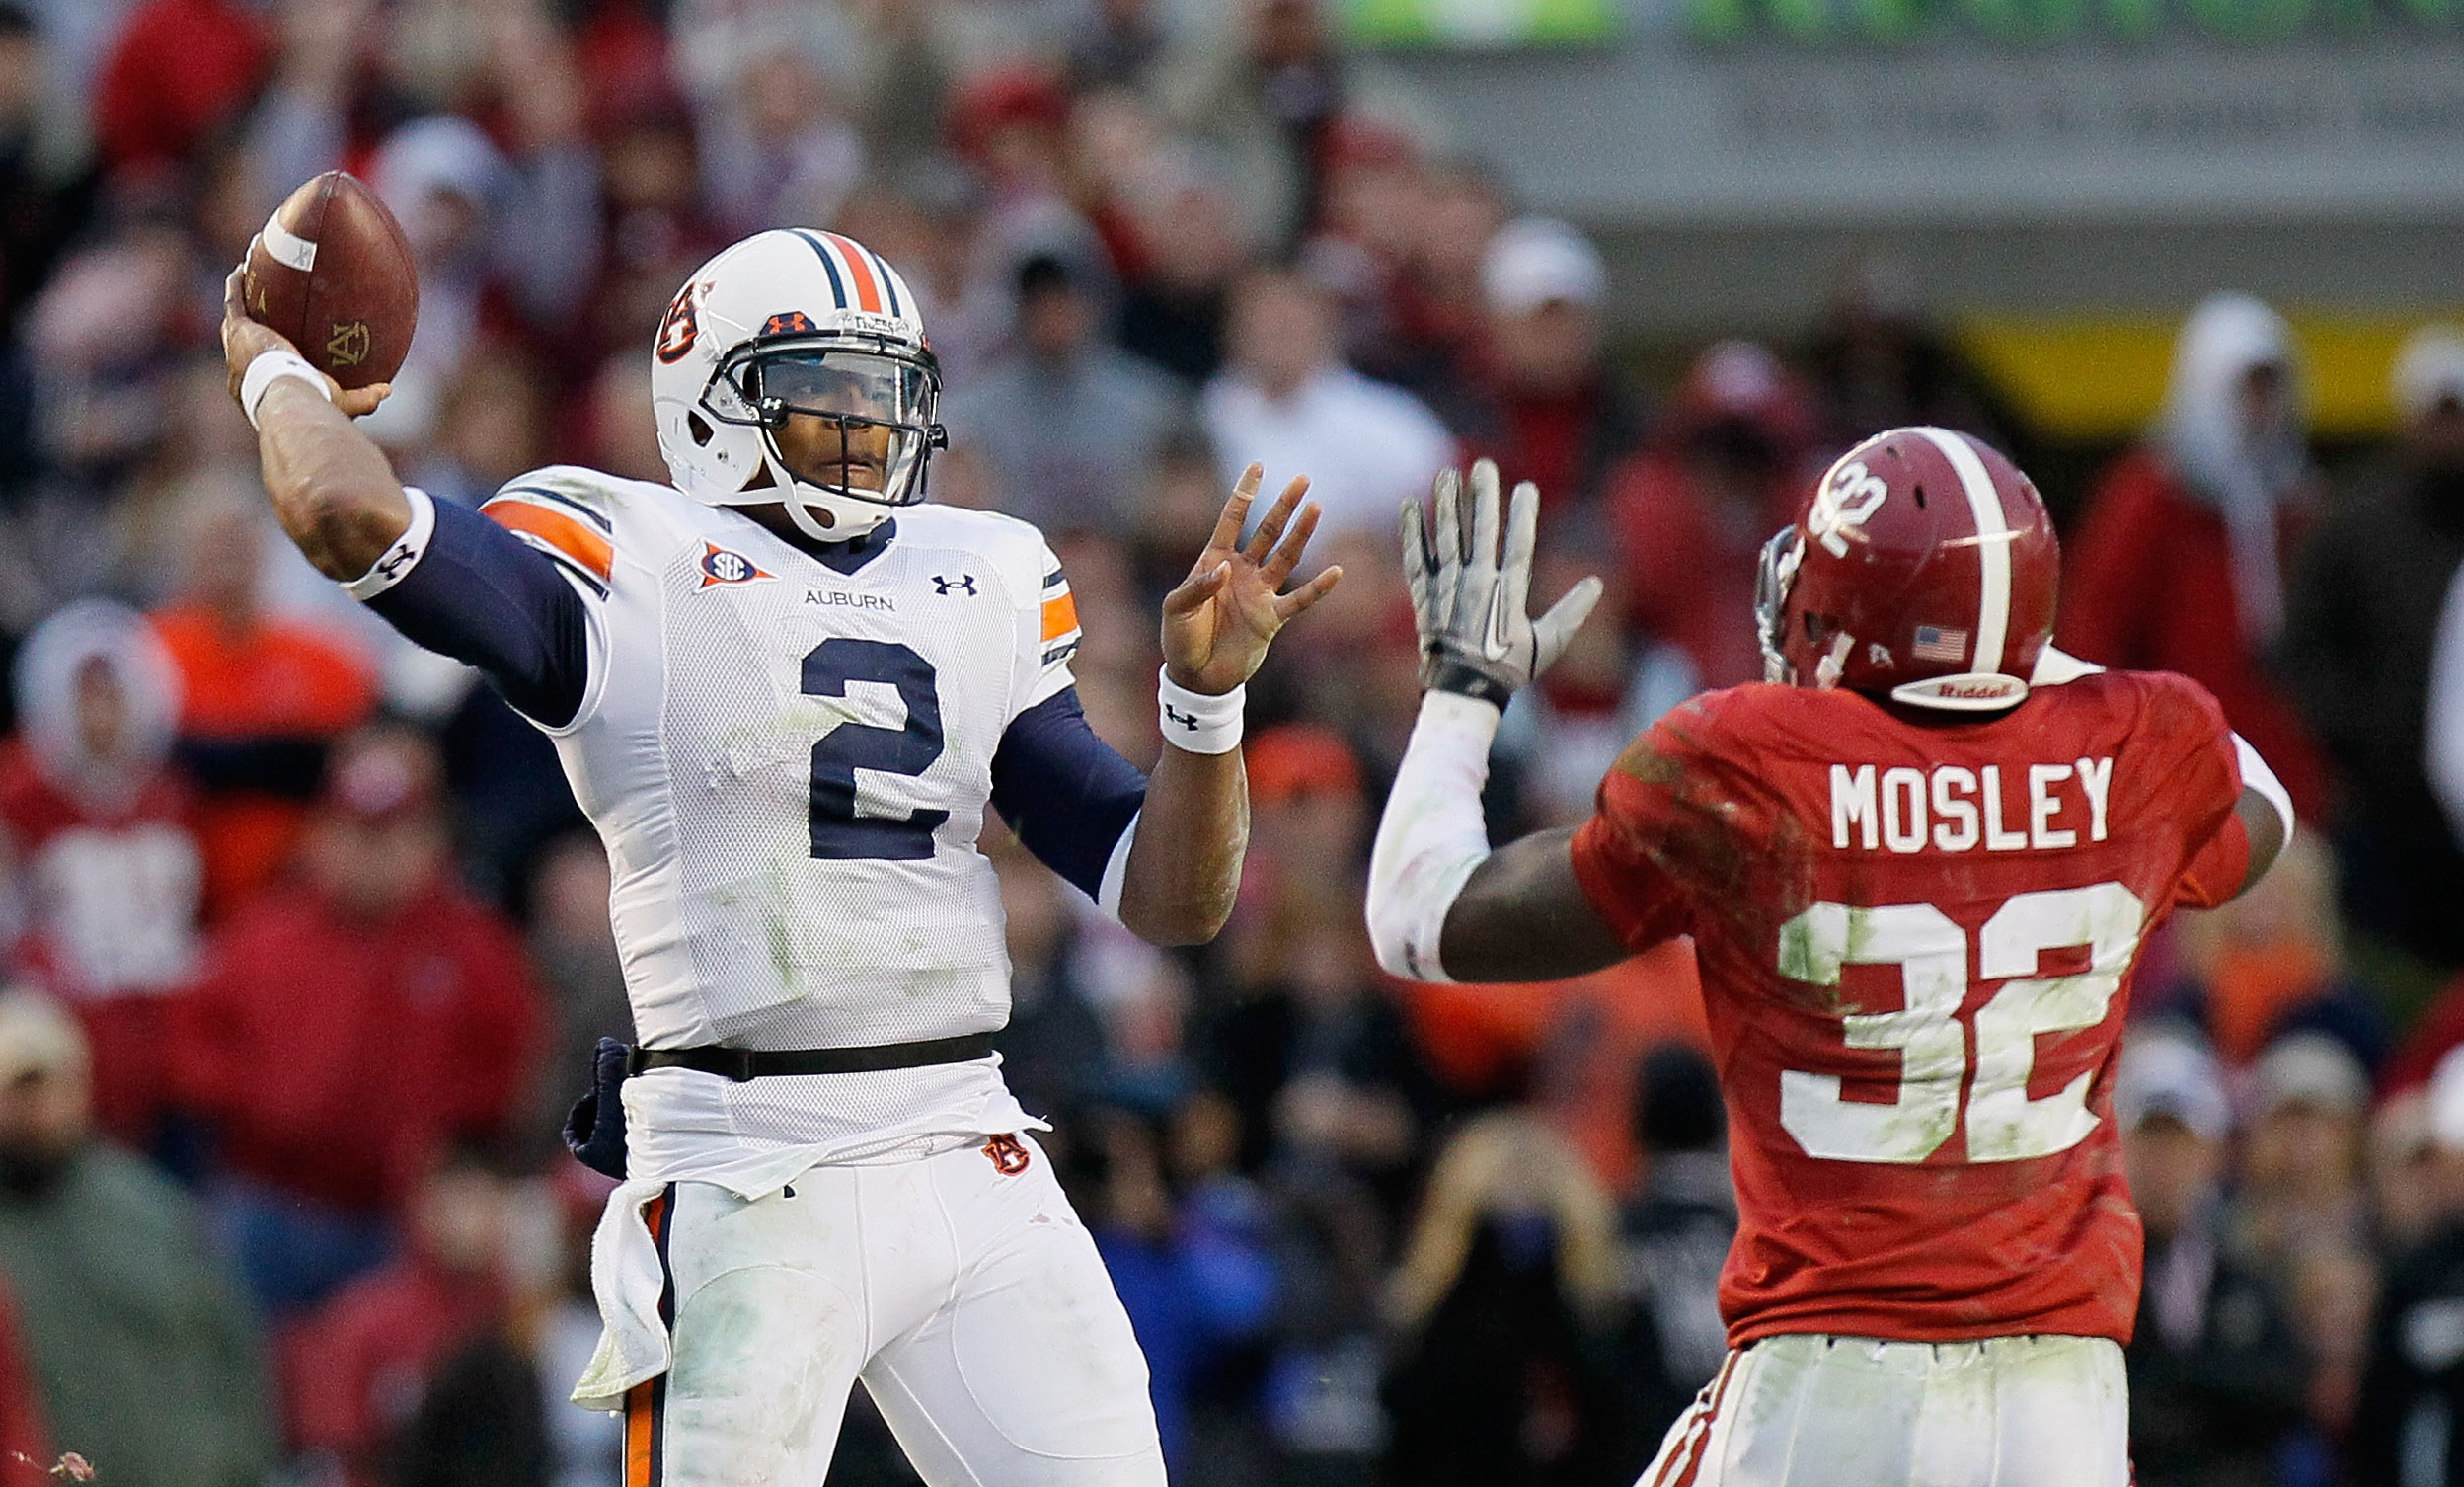 TUSCALOOSA, AL - NOVEMBER 26:  Quarterback Cam Newton #2 of the Auburn Tigers looks to pass against C.J. Mosley #32 of the Alabama Crimson Tide at Bryant-Denny Stadium on November 26, 2010 in Tuscaloosa, Alabama.  (Photo by Kevin C. Cox/Getty Images)